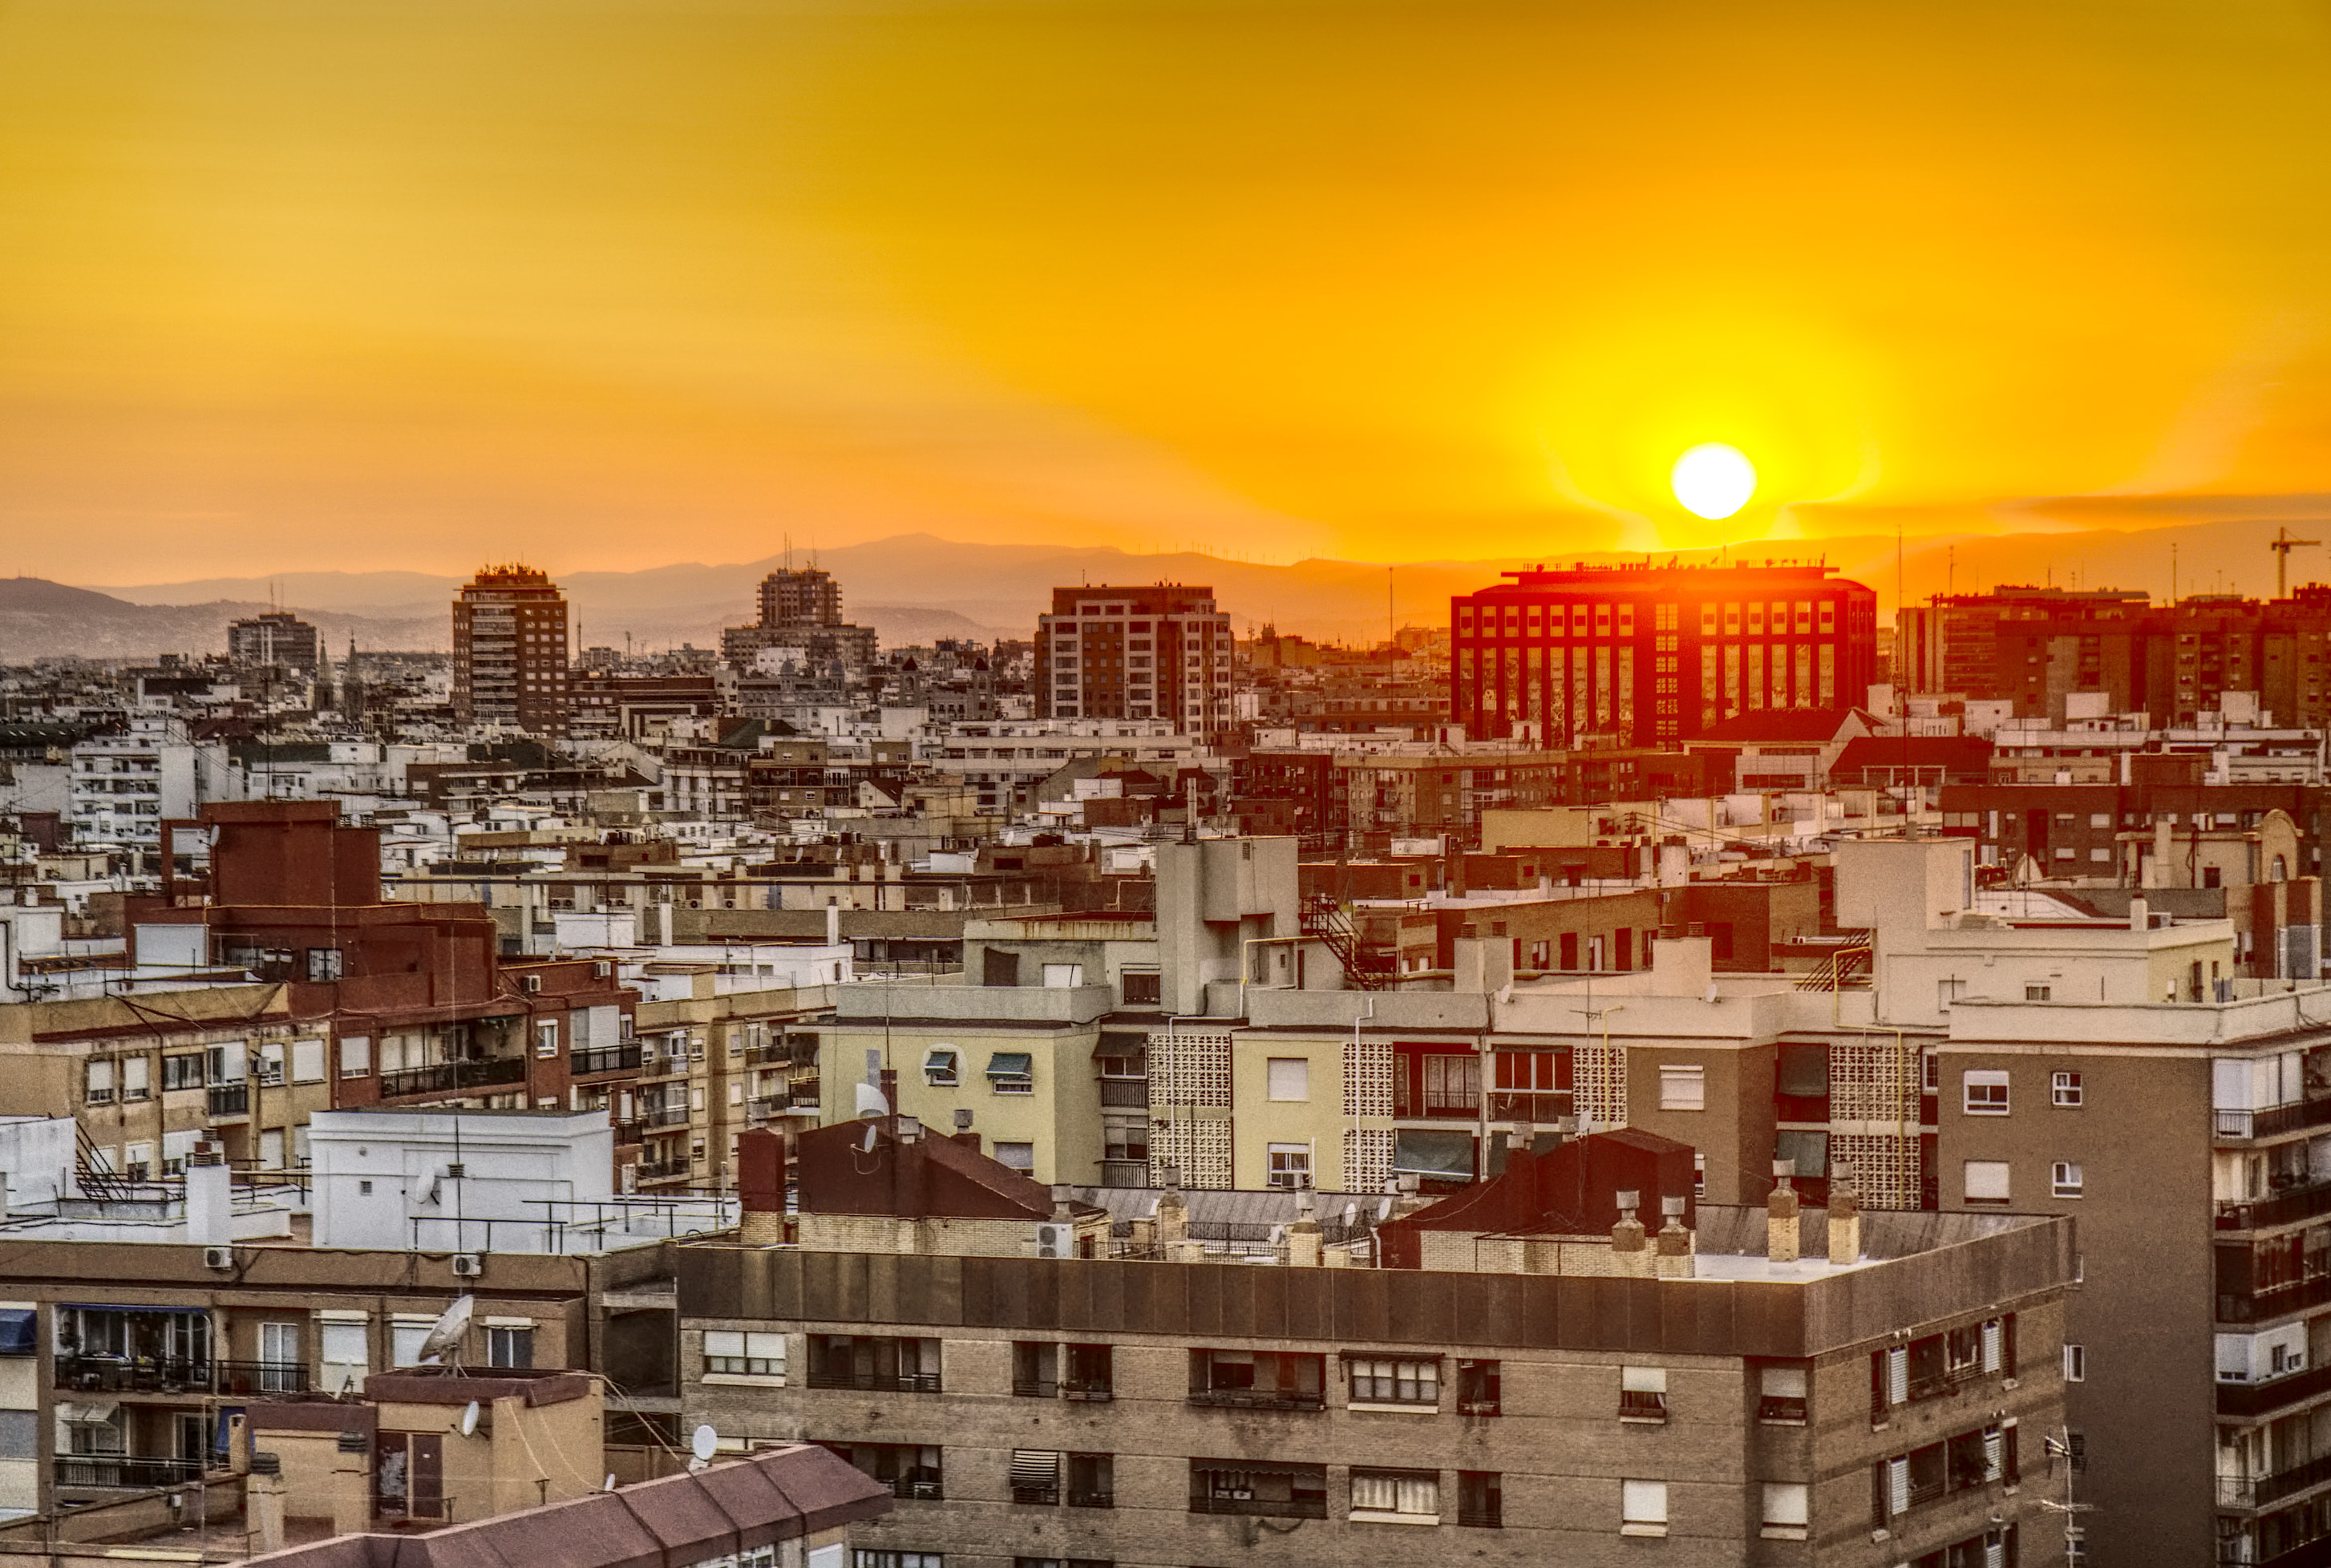 Valencia city scape at sunset